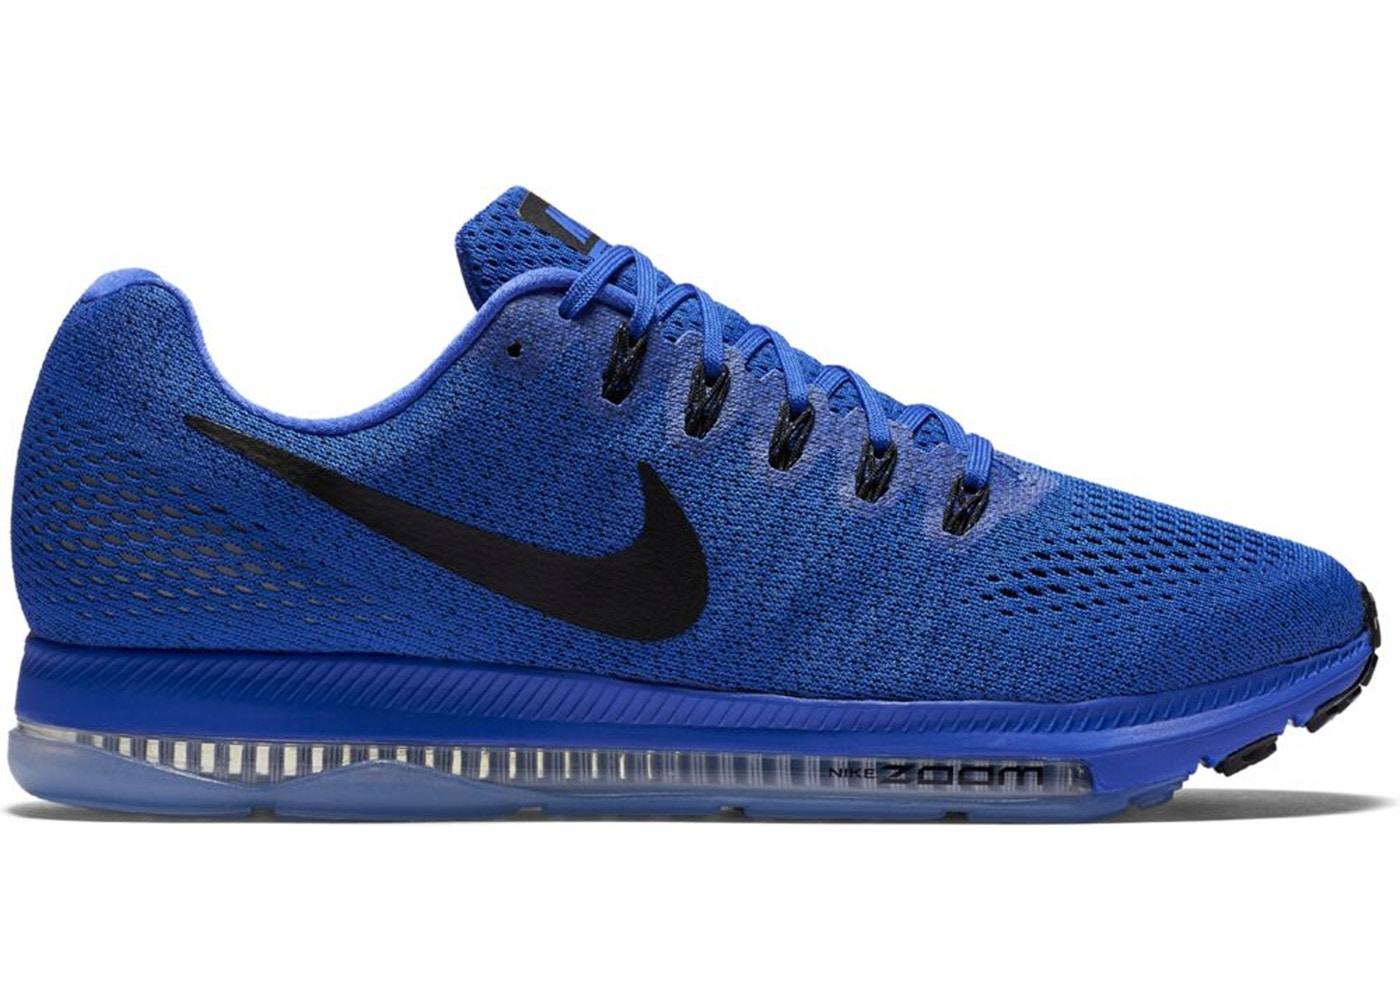 da186dc18a Nike Zoom All Out Low Paramount Blue - 878670-400